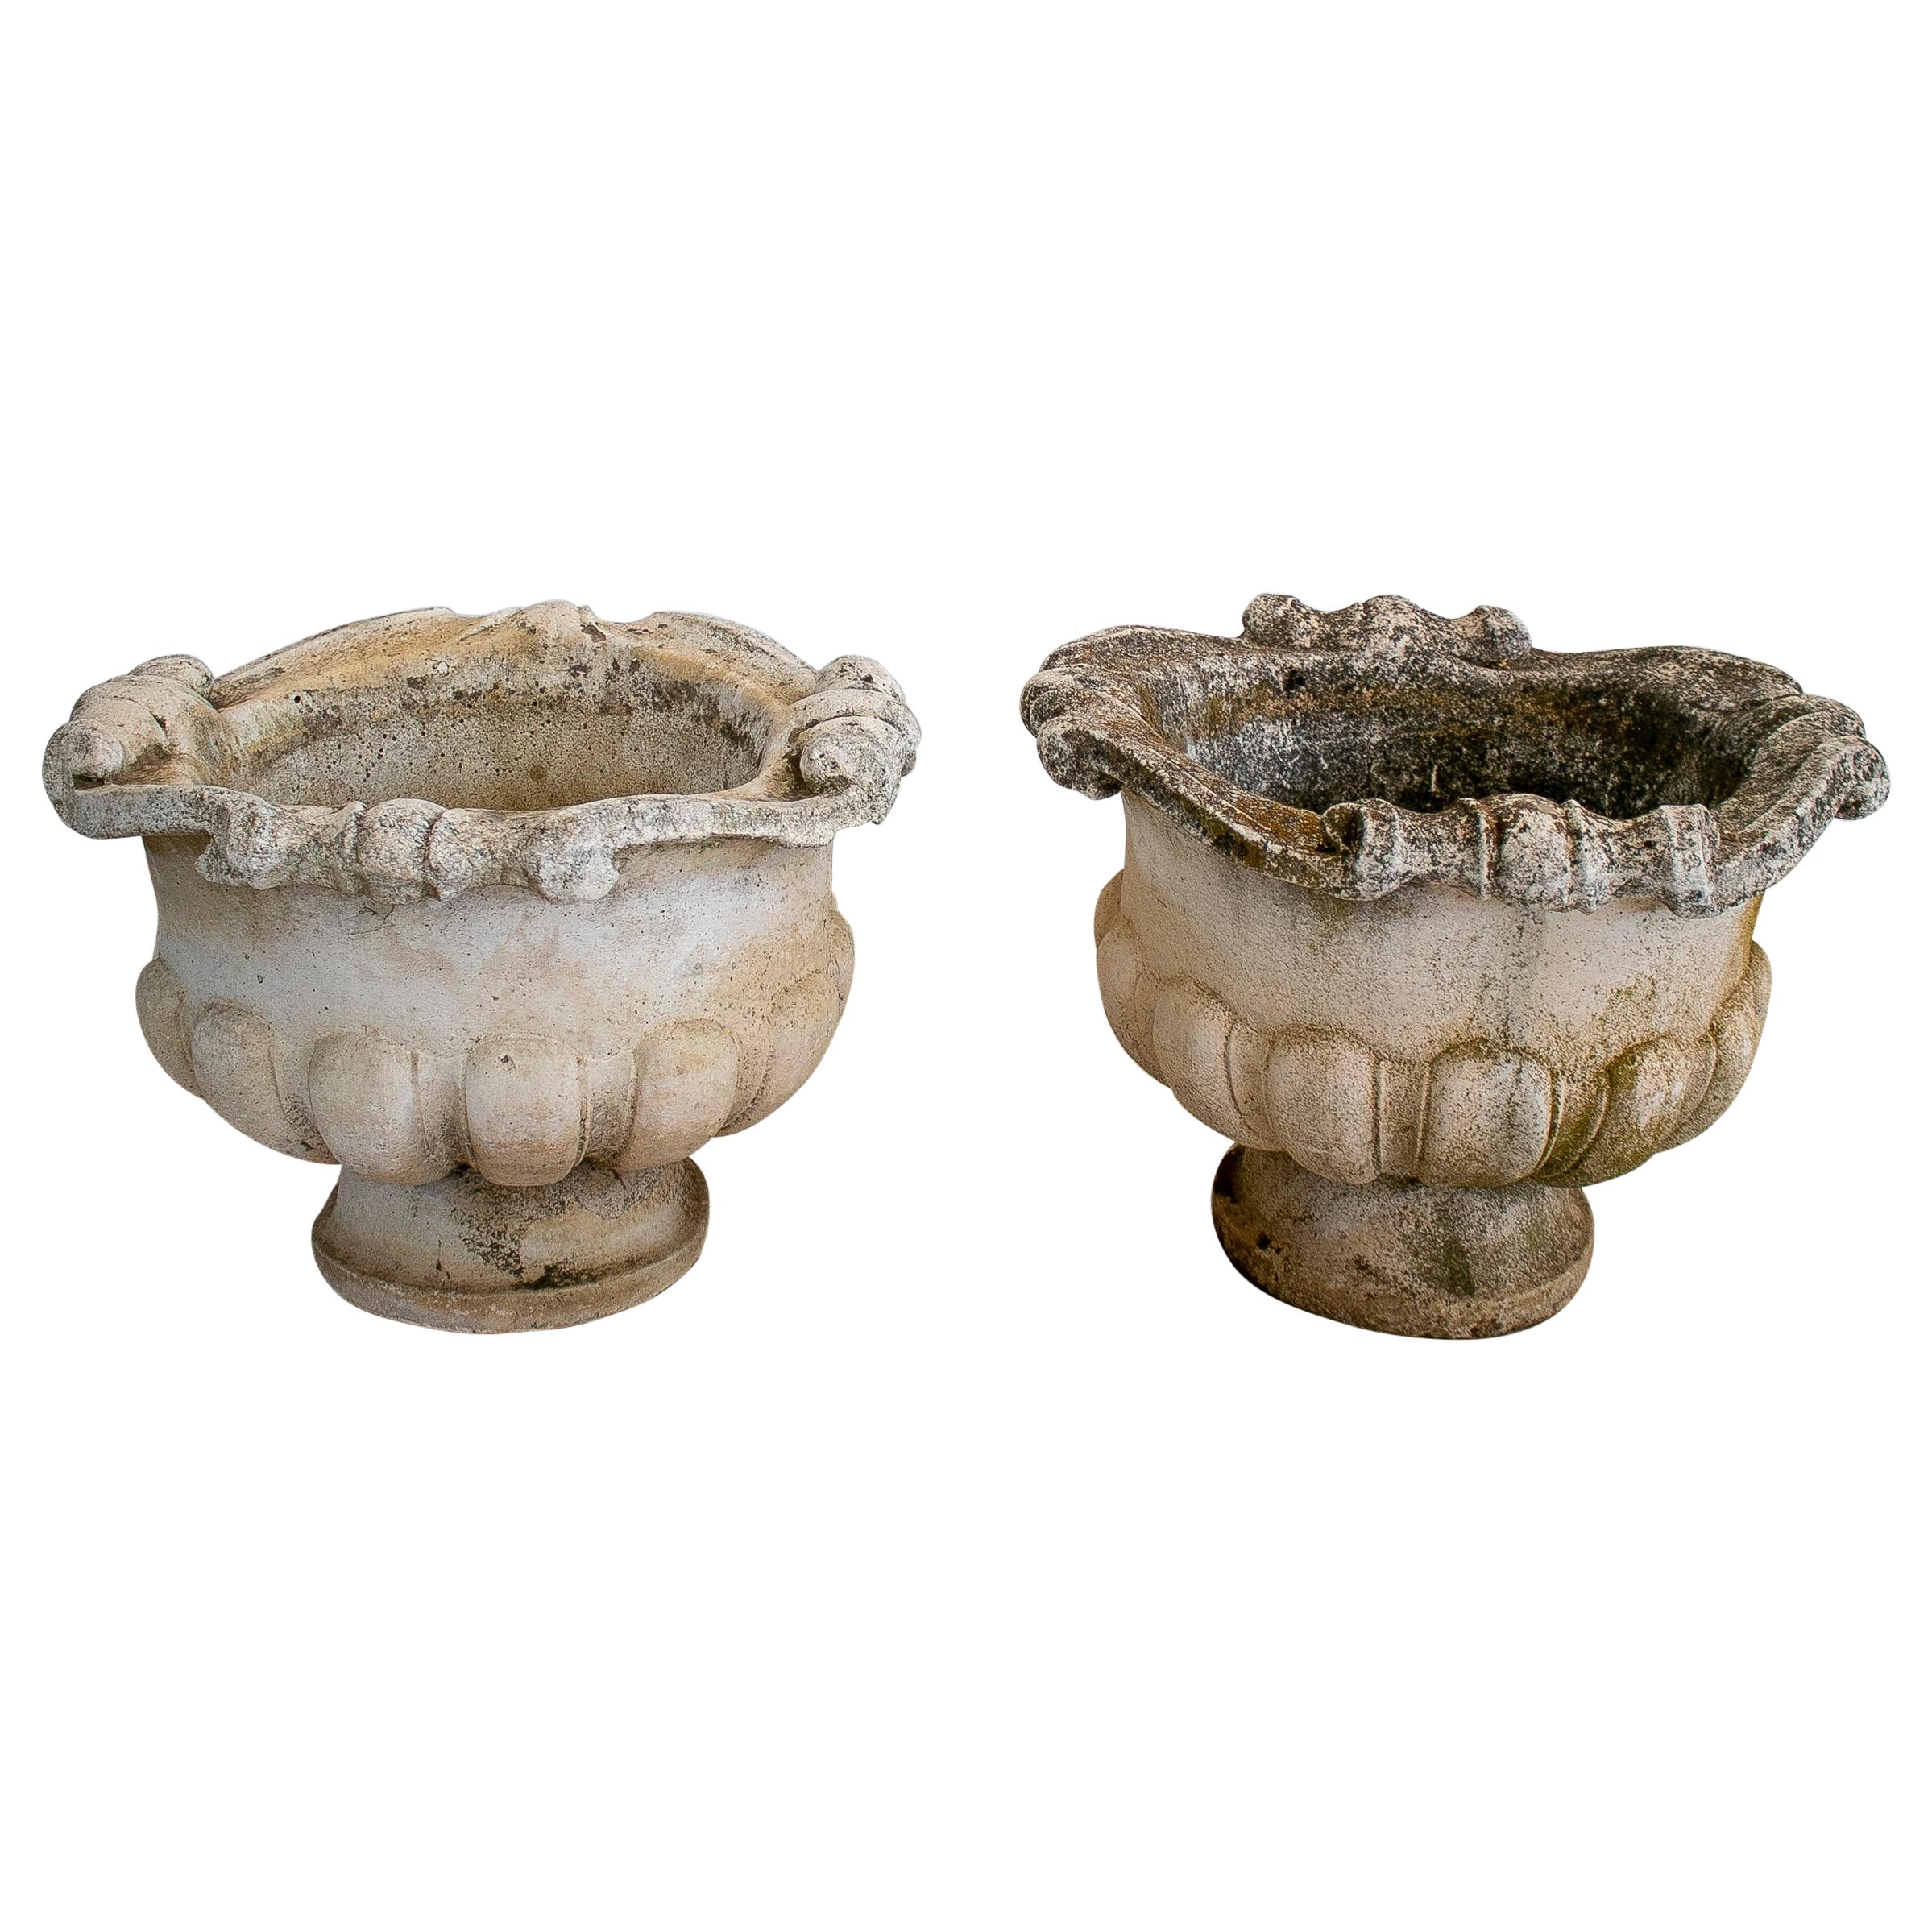 Pair of 1970s French Reconstituted Stone Garden Planters